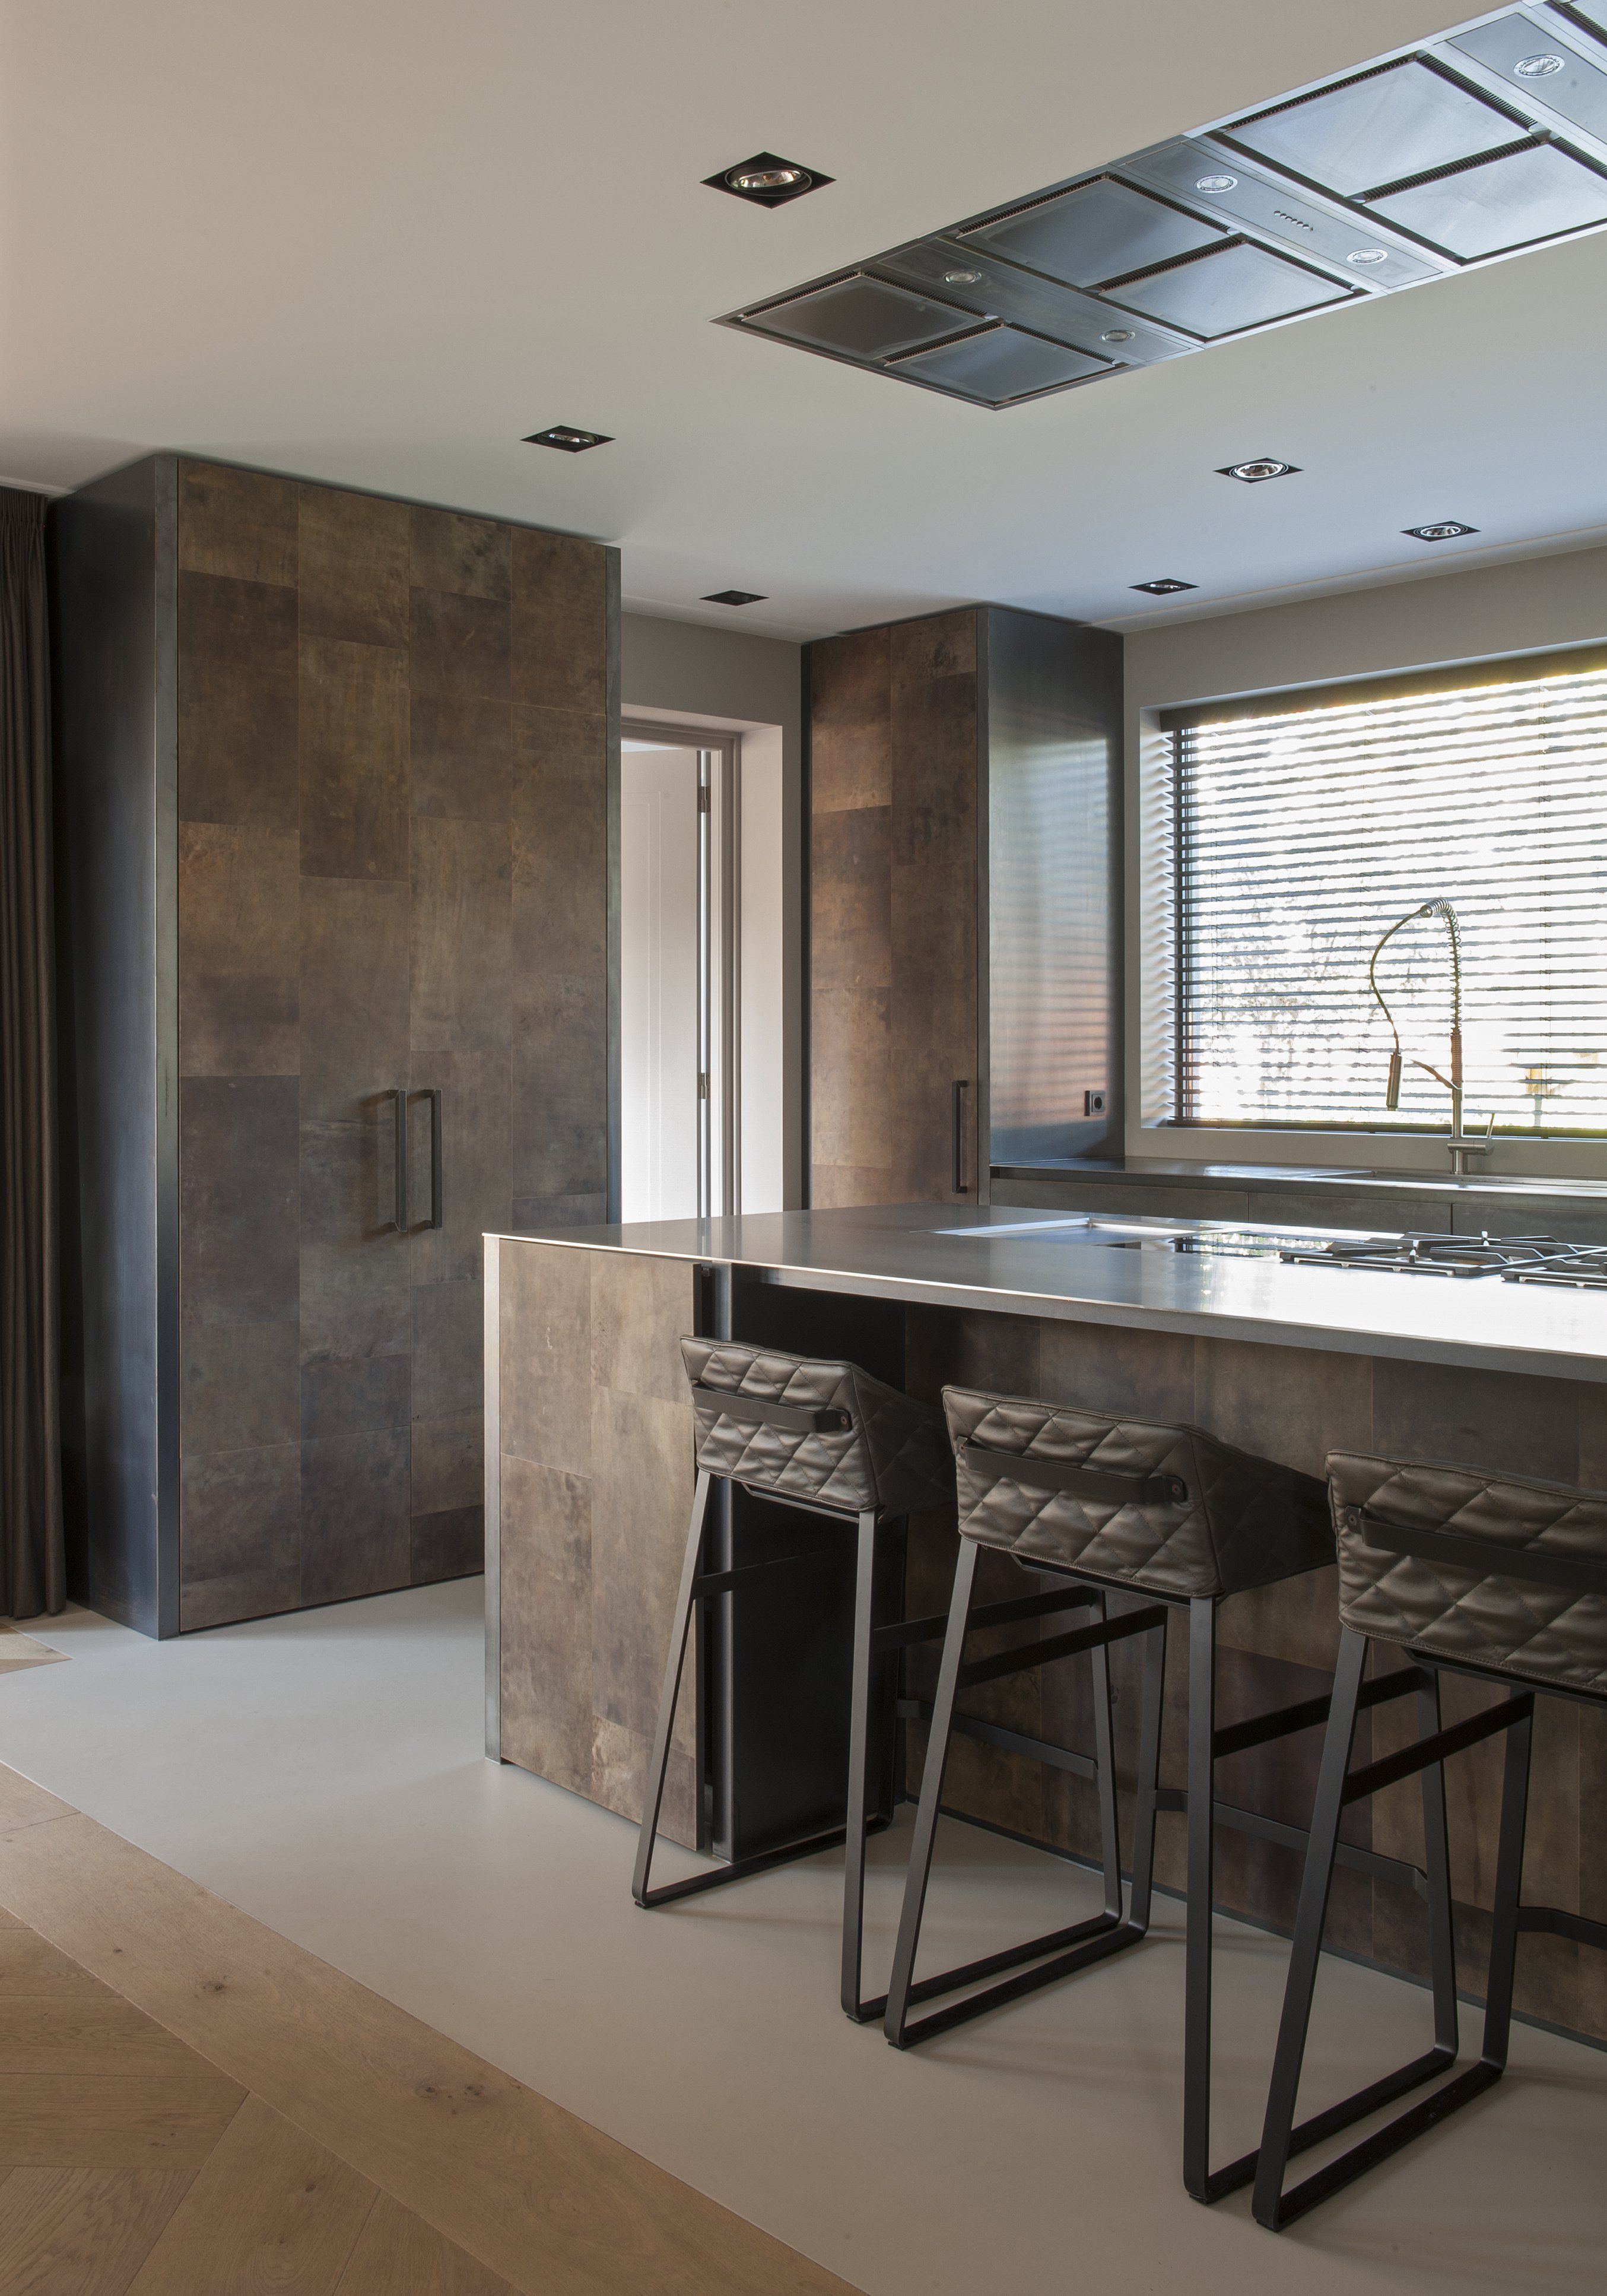 B DUTCH design keukens met B DUTCH design trimless spots. Inbouwspots. Moderne keukens luxe keukens kookeiland solid surface